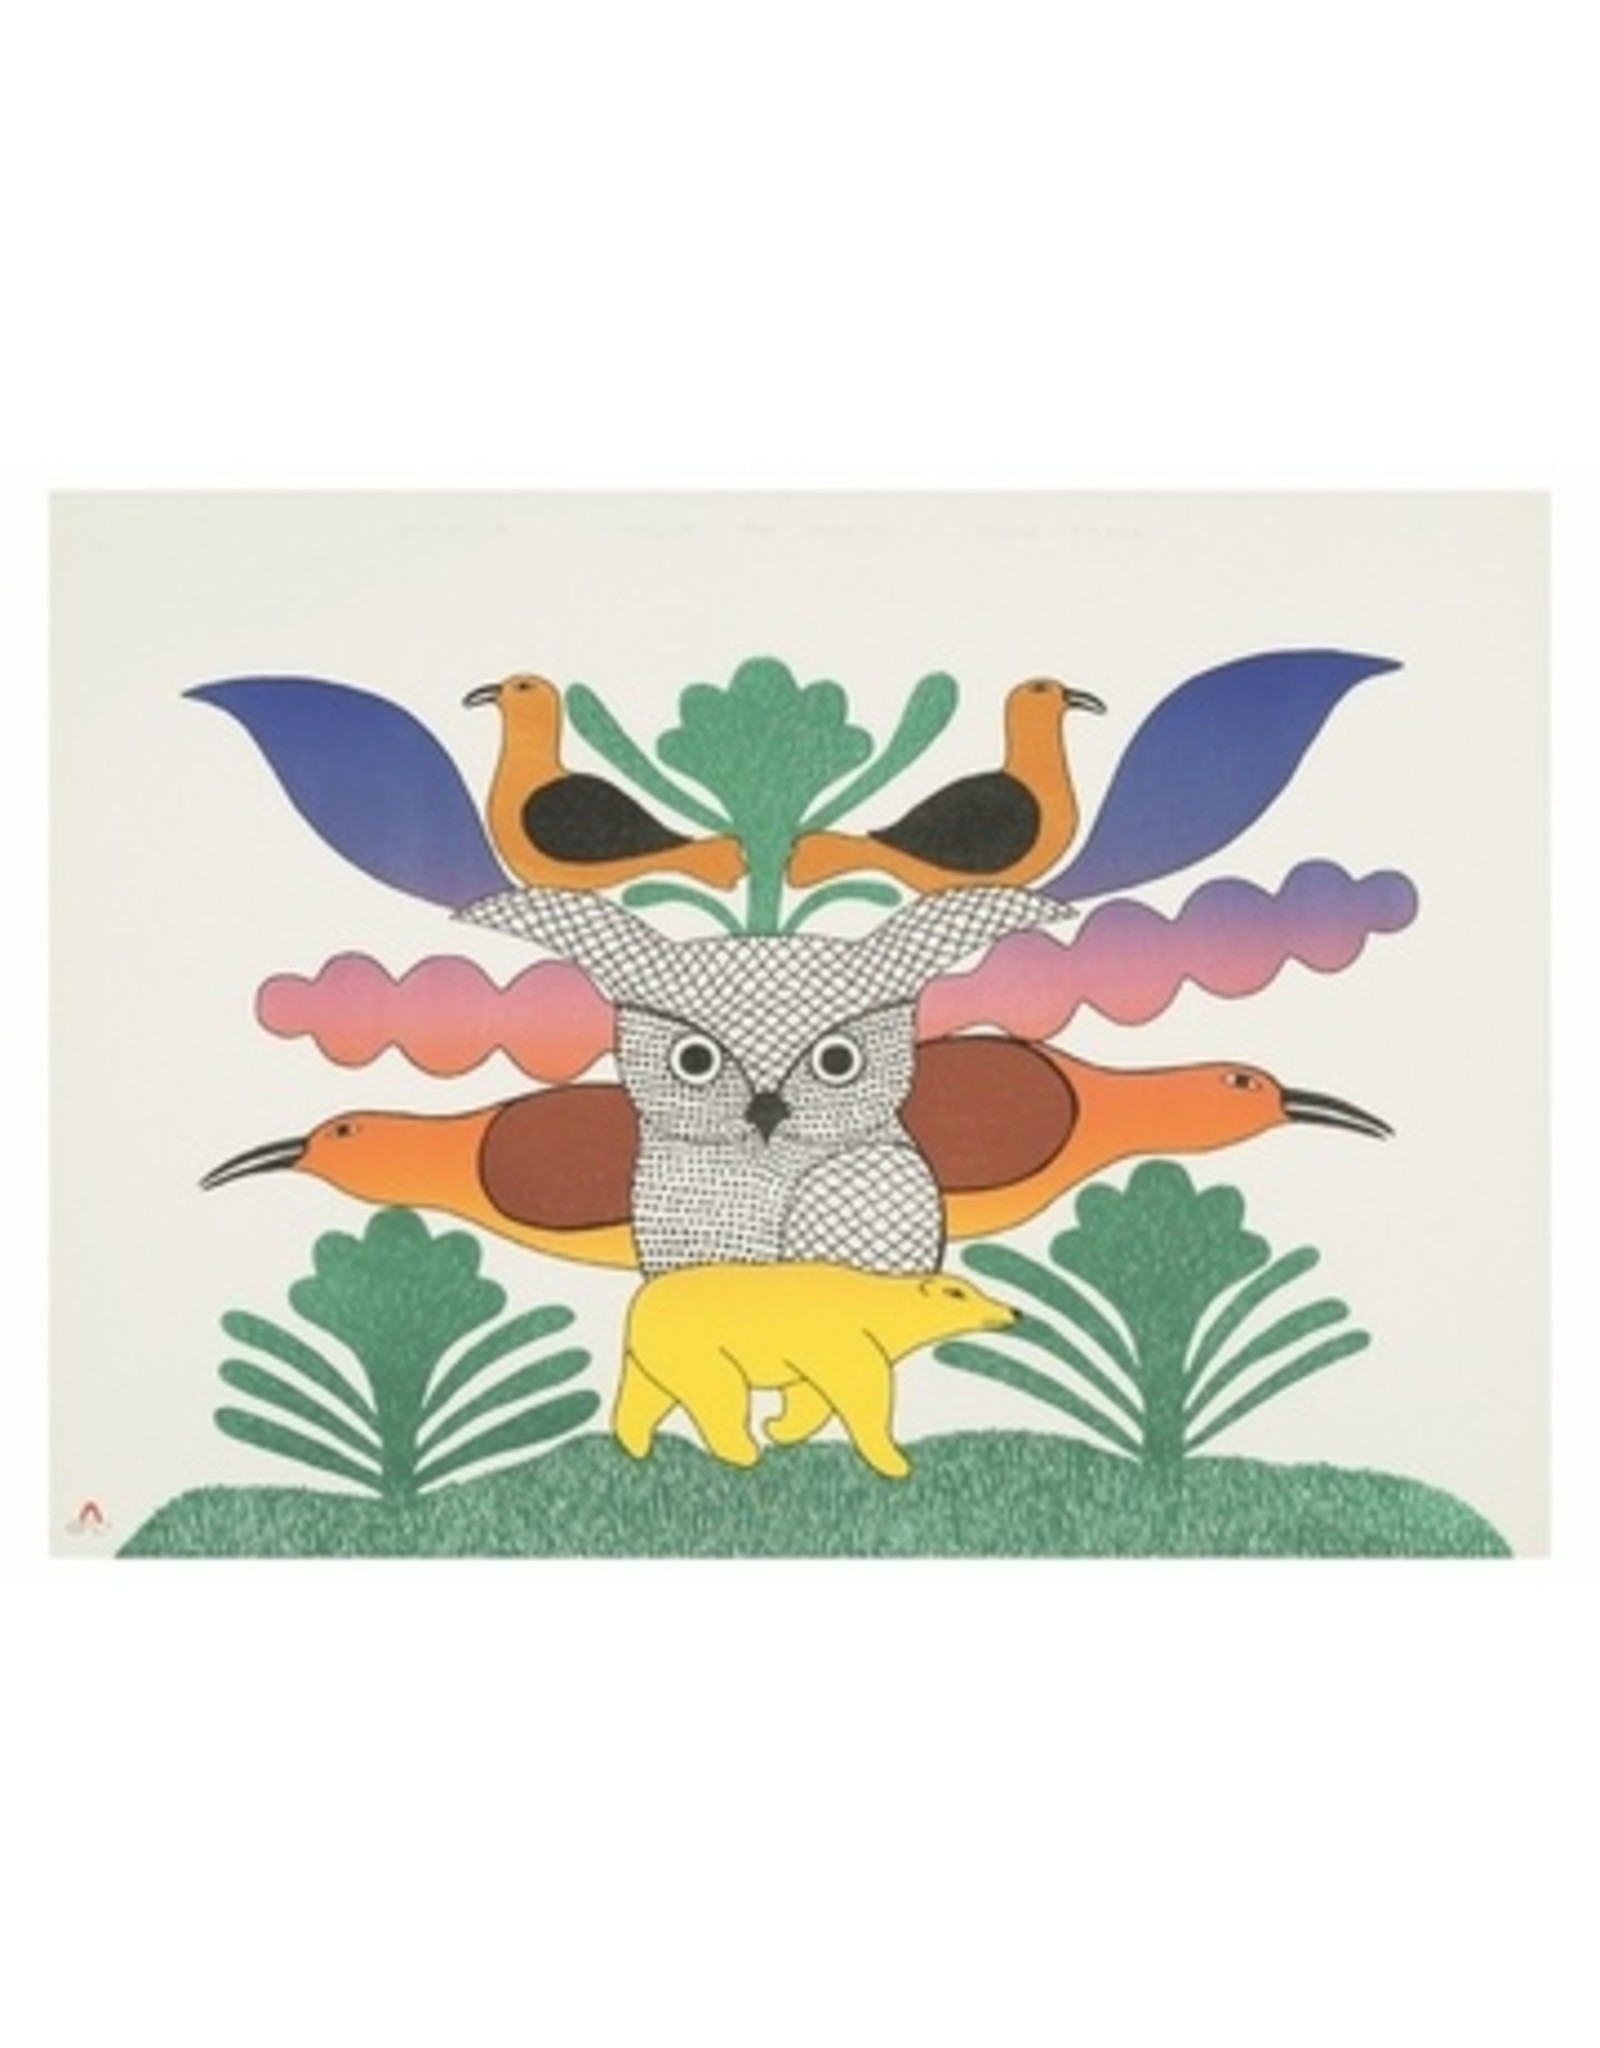 Cape Dorset Owl at the Centre